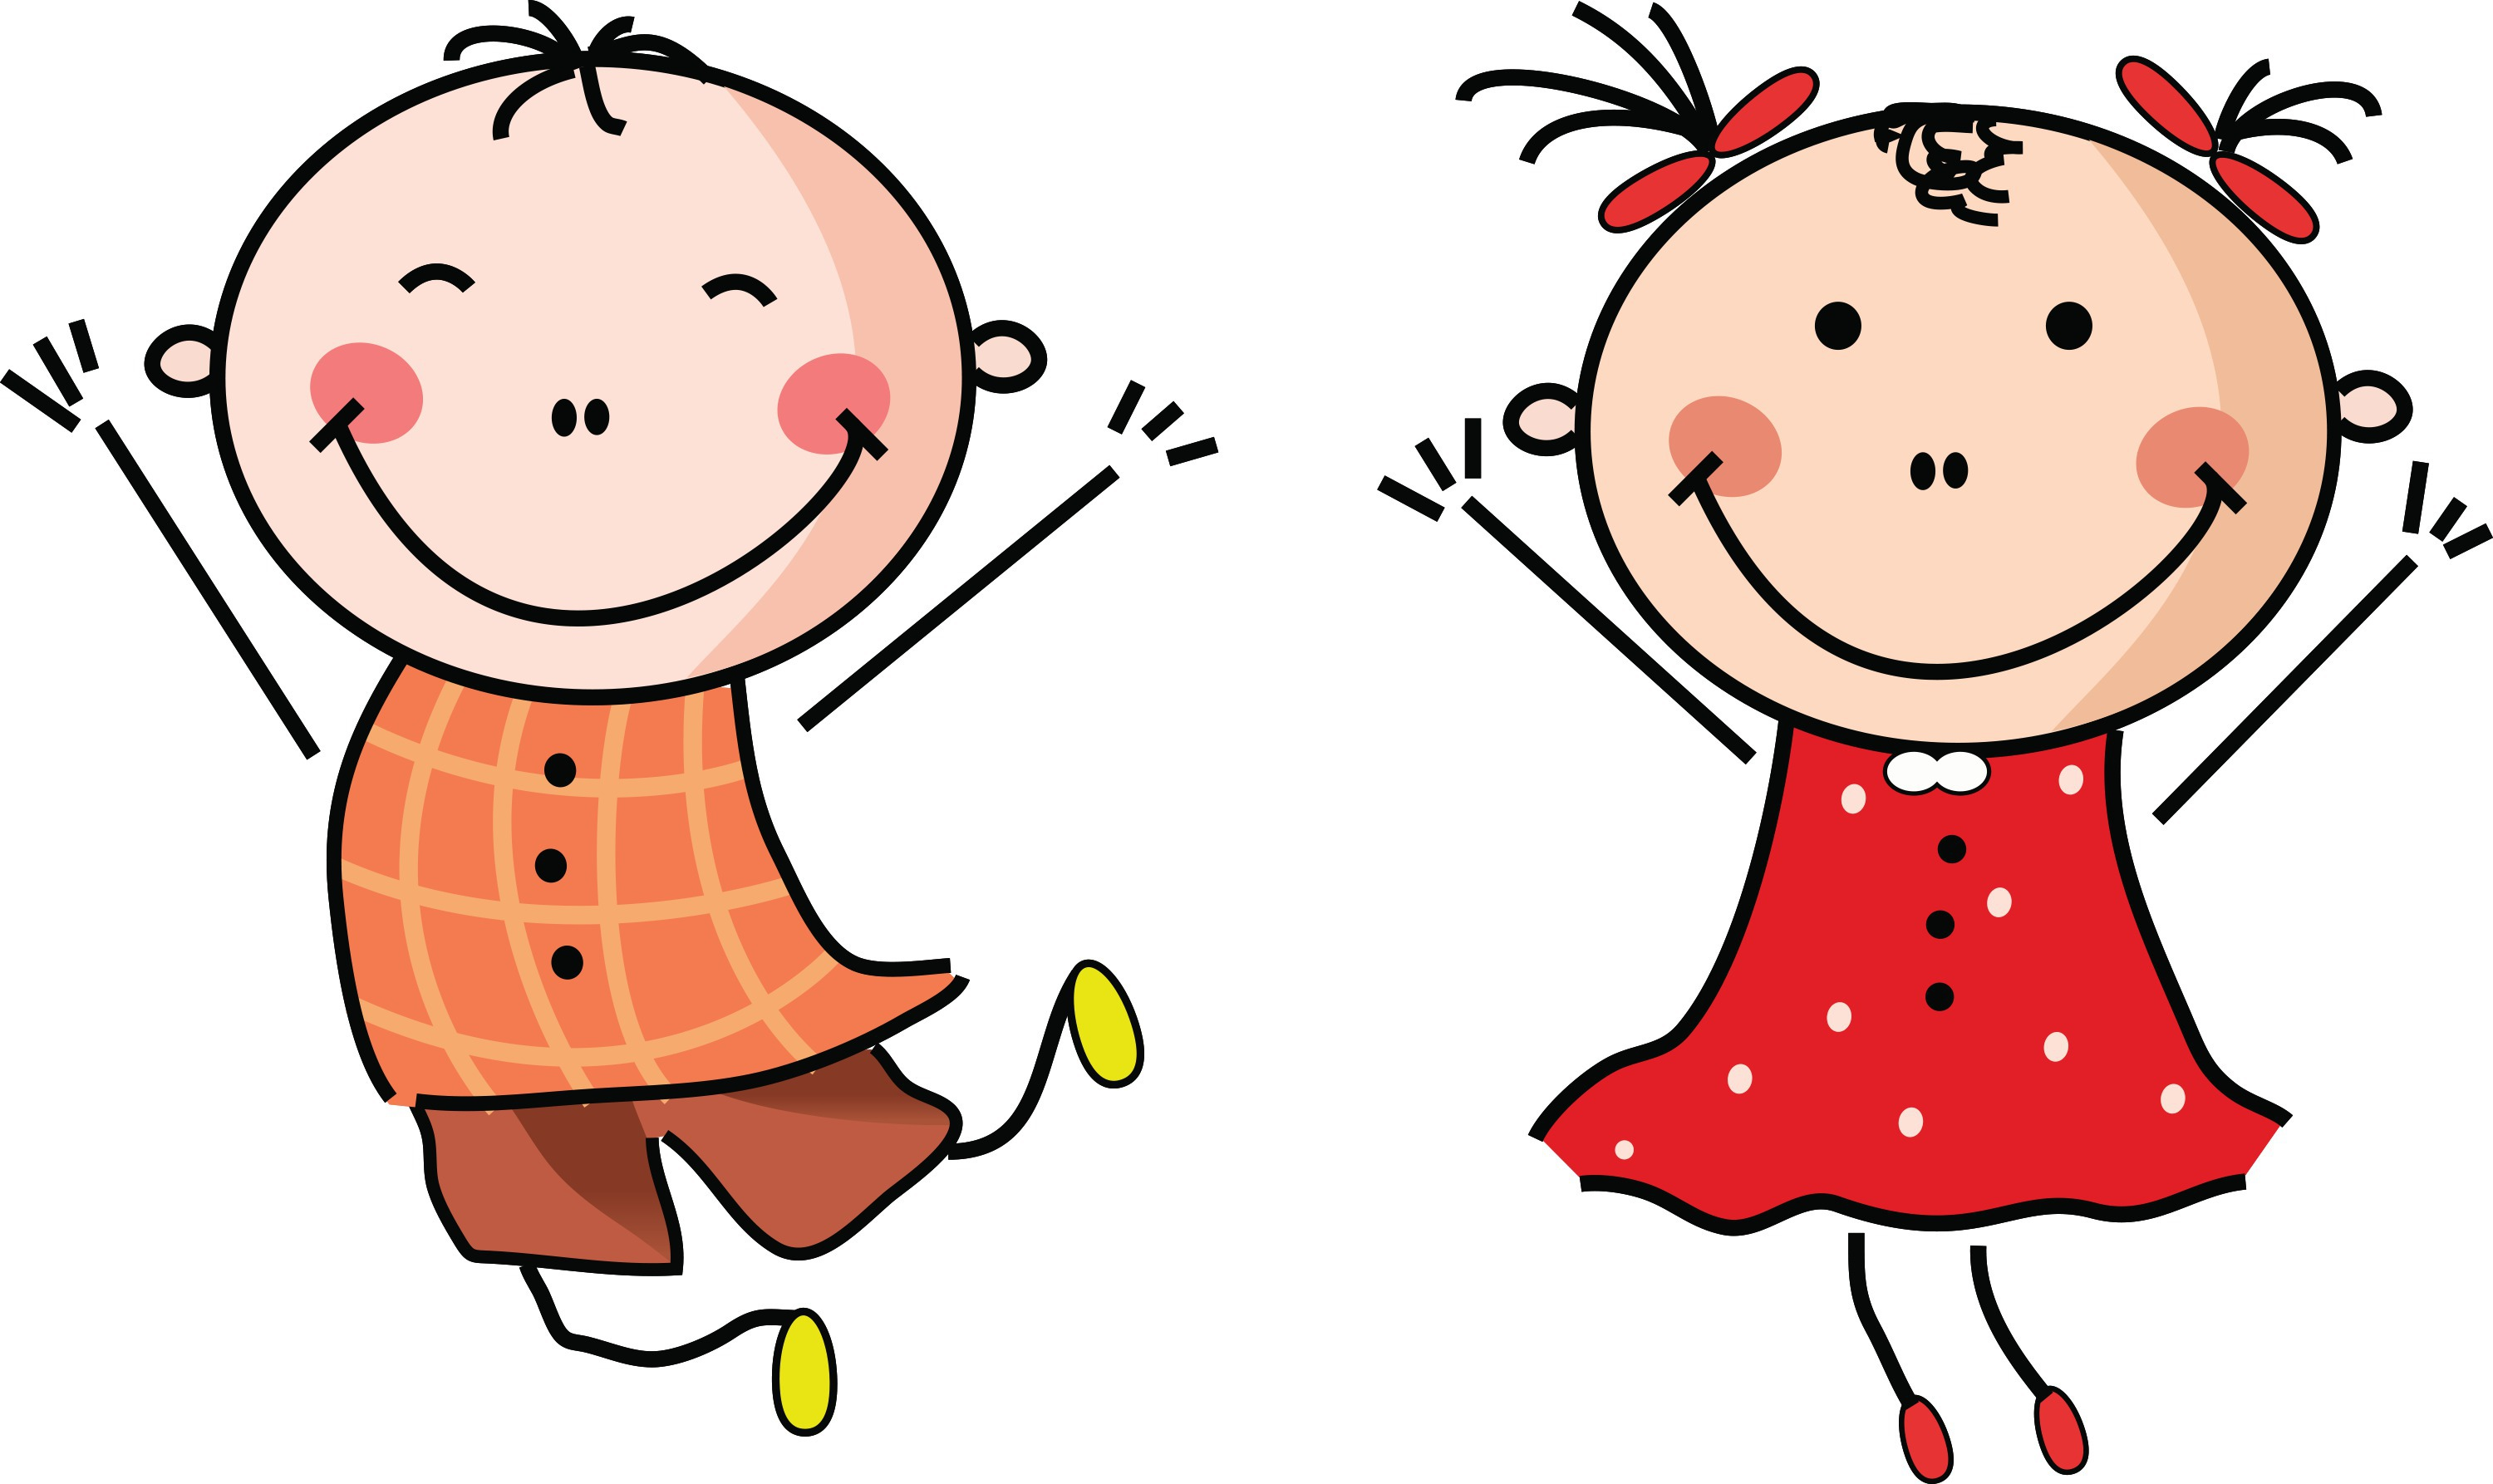 happy child clipart at getdrawings com free for personal use happy rh getdrawings com happy clip art animation happy clip art pictures free